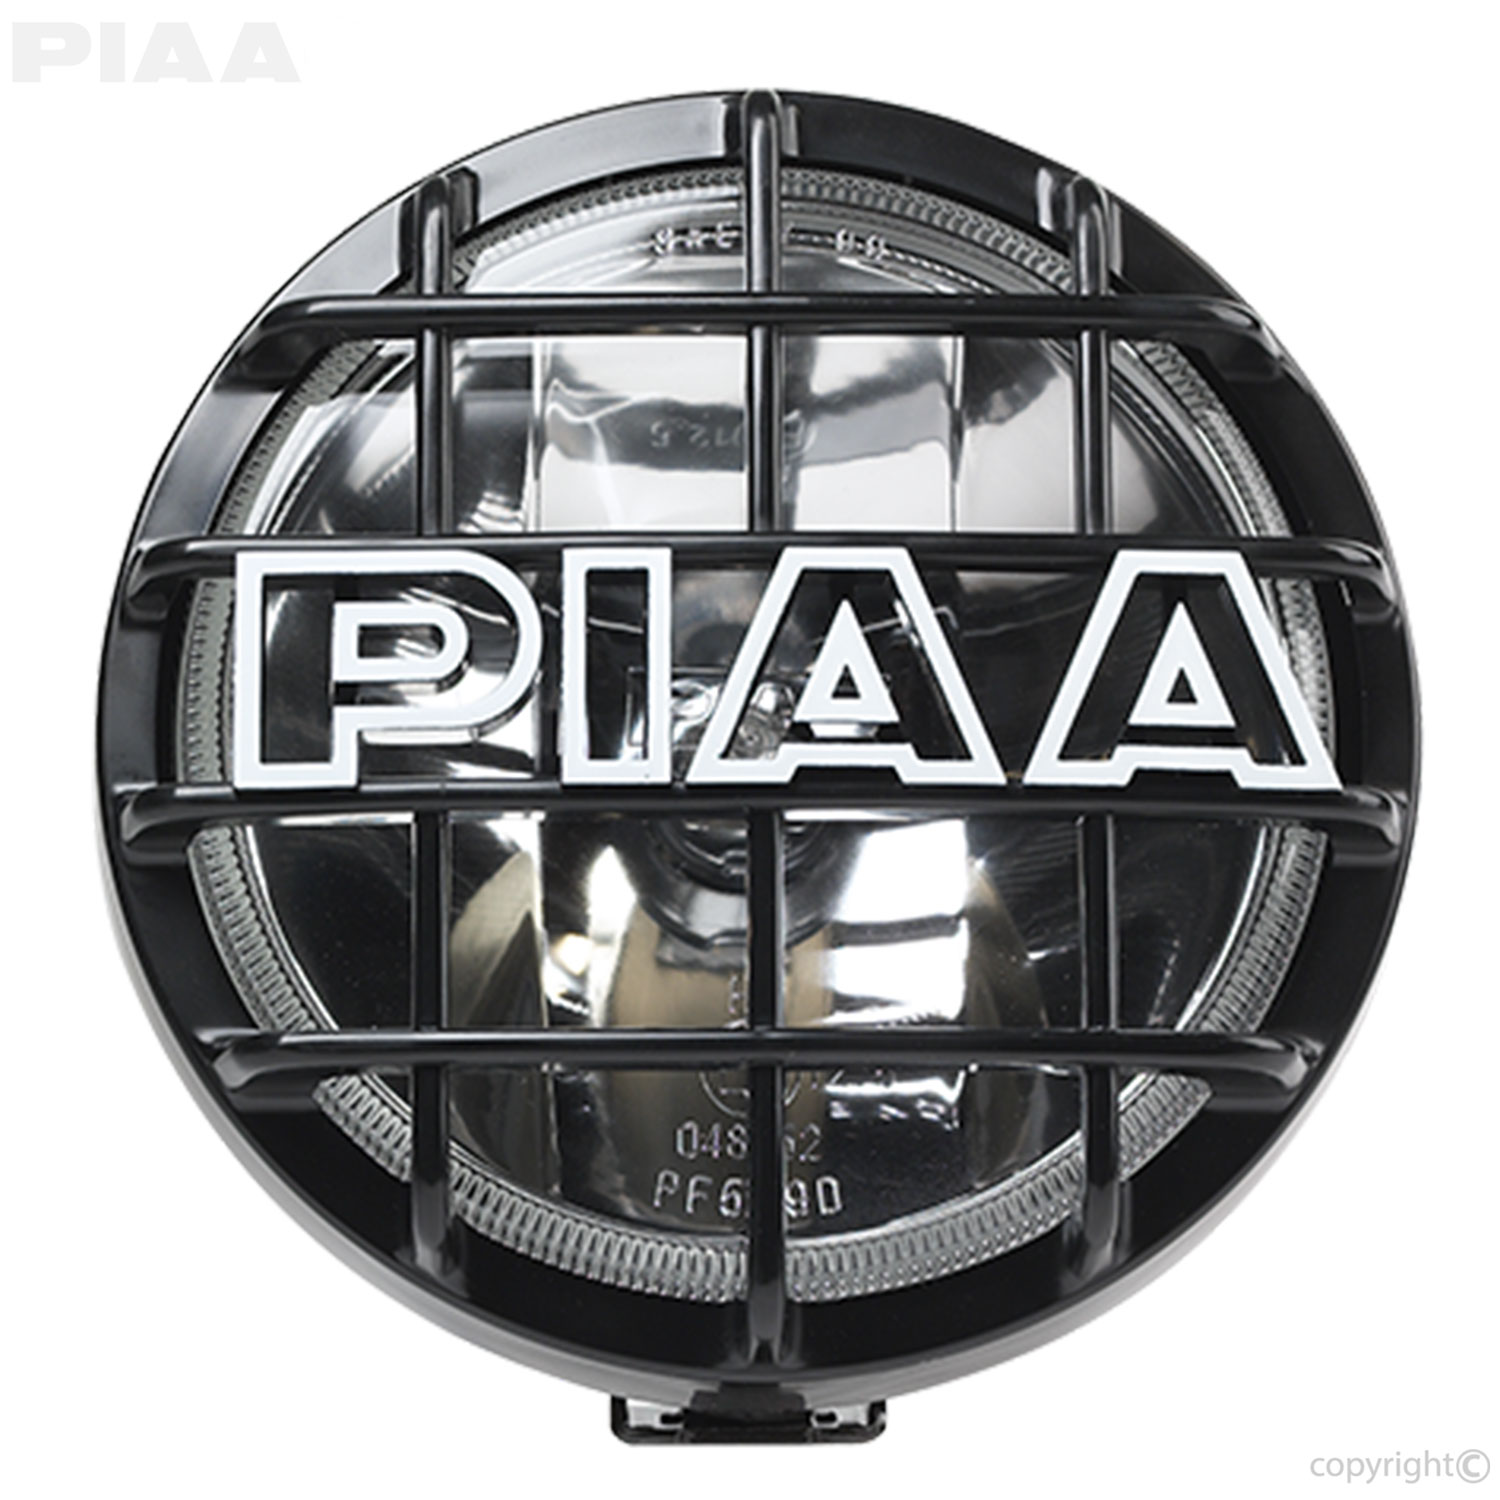 piaa 05296 520 front hr?bw\=1000\&w\=1000\&bh\=1000\&h\=1000 piaa 5296 wiring diagrams wiring diagrams piaa pl5fb wiring diagram at n-0.co